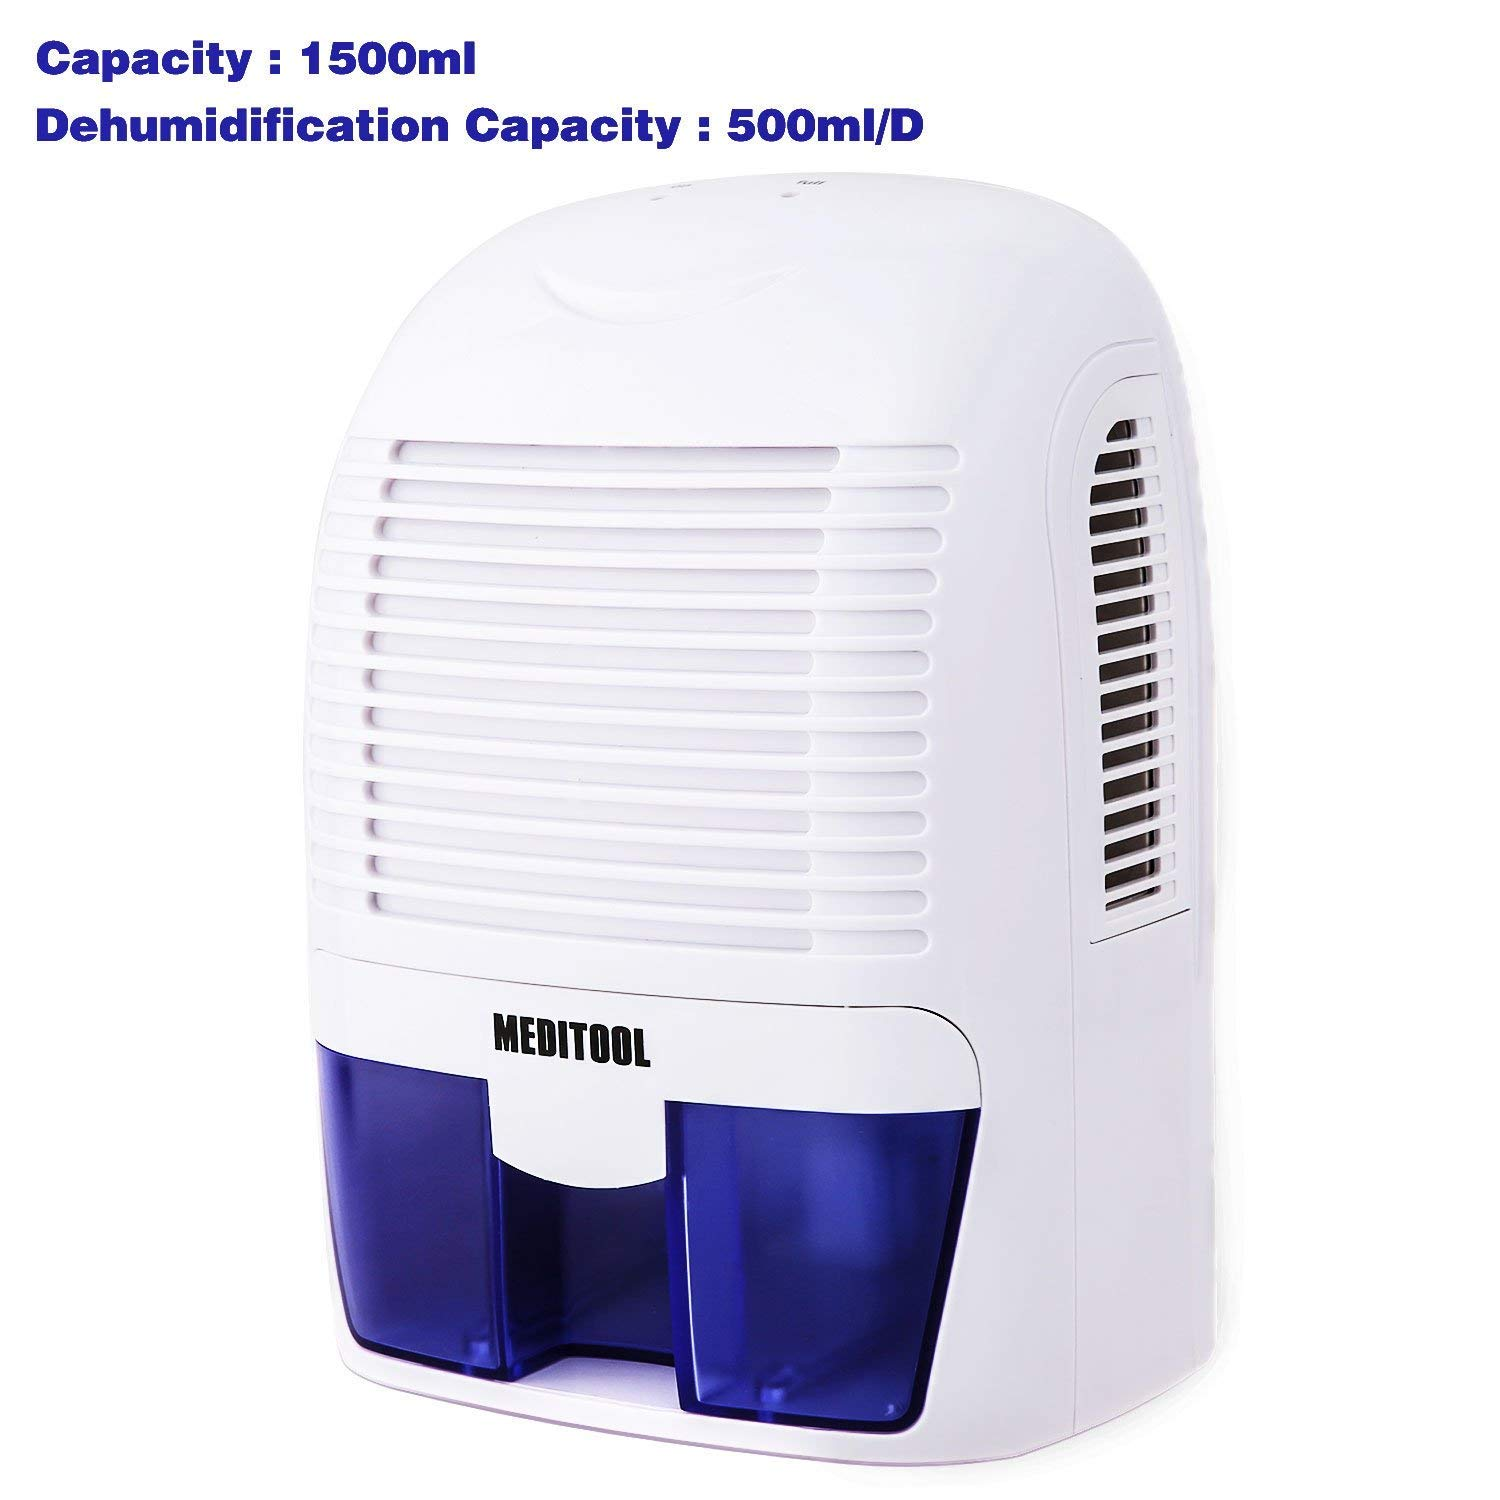 Rendio Auto Quiet Portable Compact Home Dehumidifiers, Electric Dehumidifier with 1.5L Water Tank for 2200 Cubic Feet Basement, Damp Air, Mold, Moisture in Home, Kitchen, Bedroom, Caravan, Office, Gar